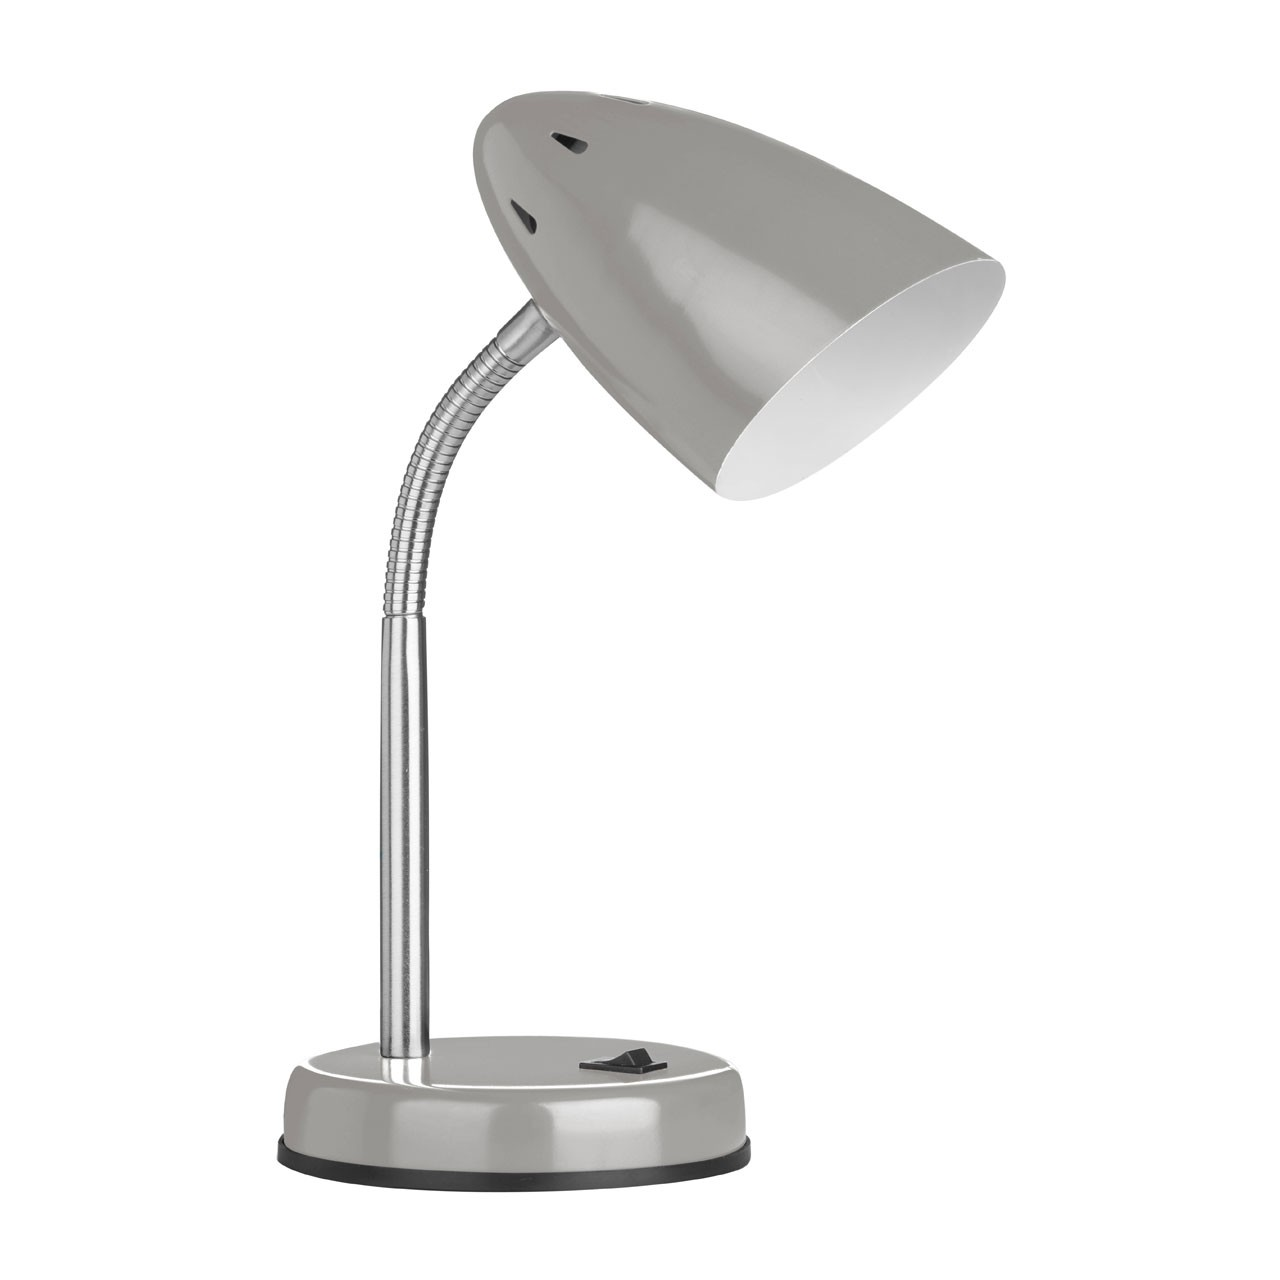 Prime Furnishing Flexi Desk Lamp - Grey